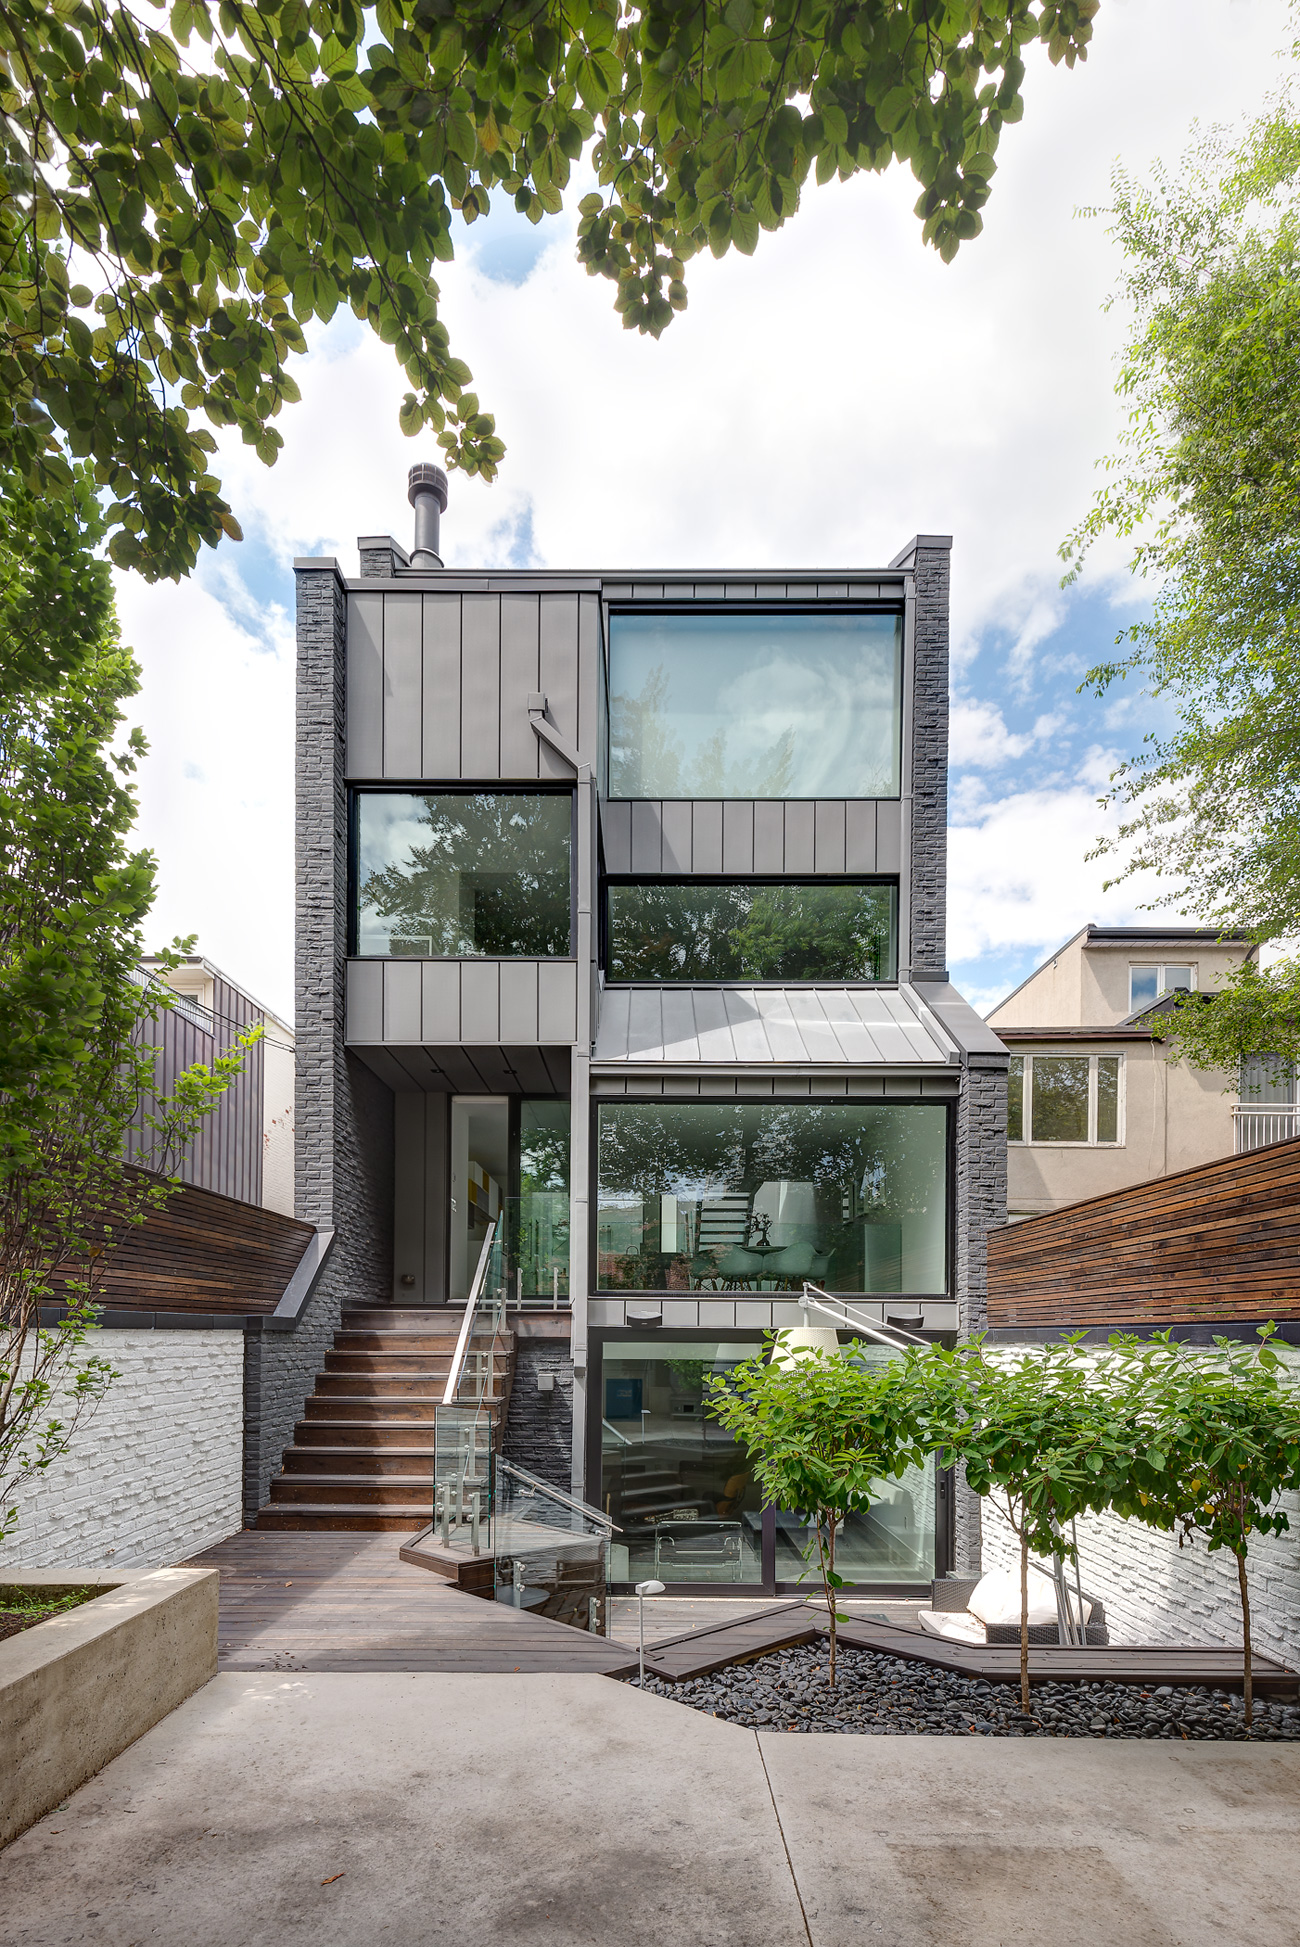 Audax Architecture landscaped the 71-square-metre outdoor living space using poured concrete and stained cedar. The basement has a walk-out patio, and there is a private deck off the master bedroom.